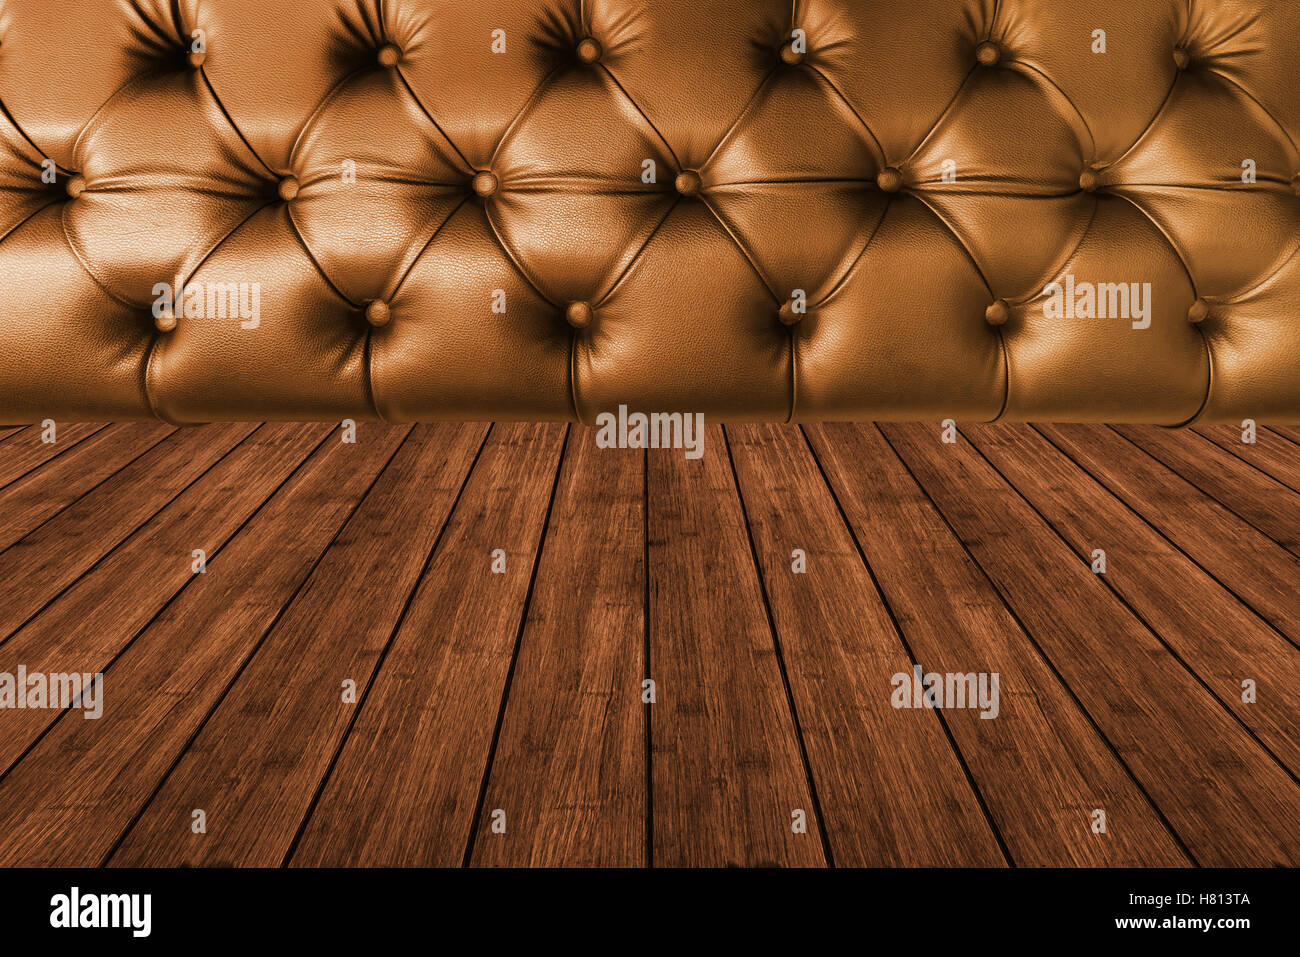 Dark Brown Leather Seat With Dark Wood Texture Plank Panel Timber  Background   Stock Image